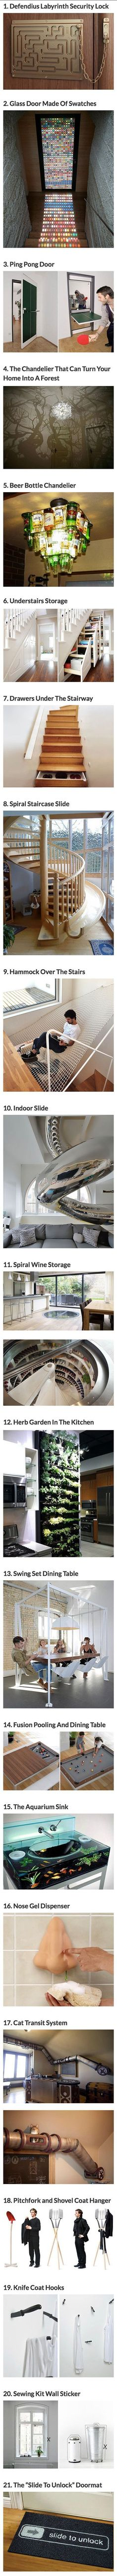 Some of these ideas would be AMAZING fun depending on my future home style. Especially the shovel and pitchfork!! Check out my other pins and consider following me if you like what you see.: